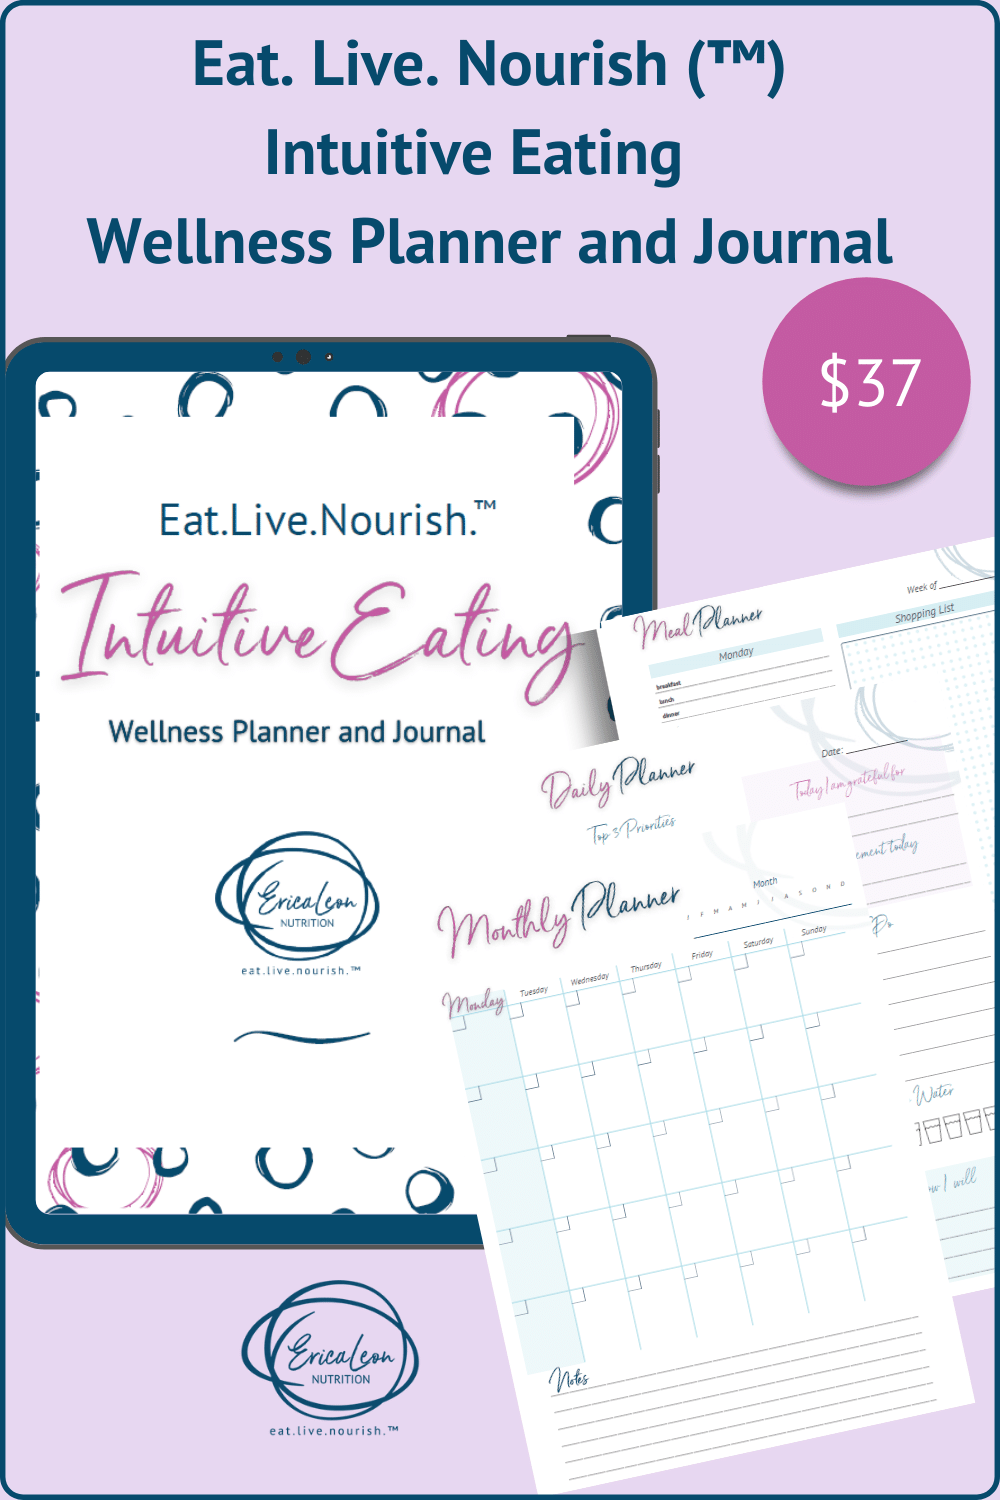 Intuitive Eating Wellness Planner and Journal